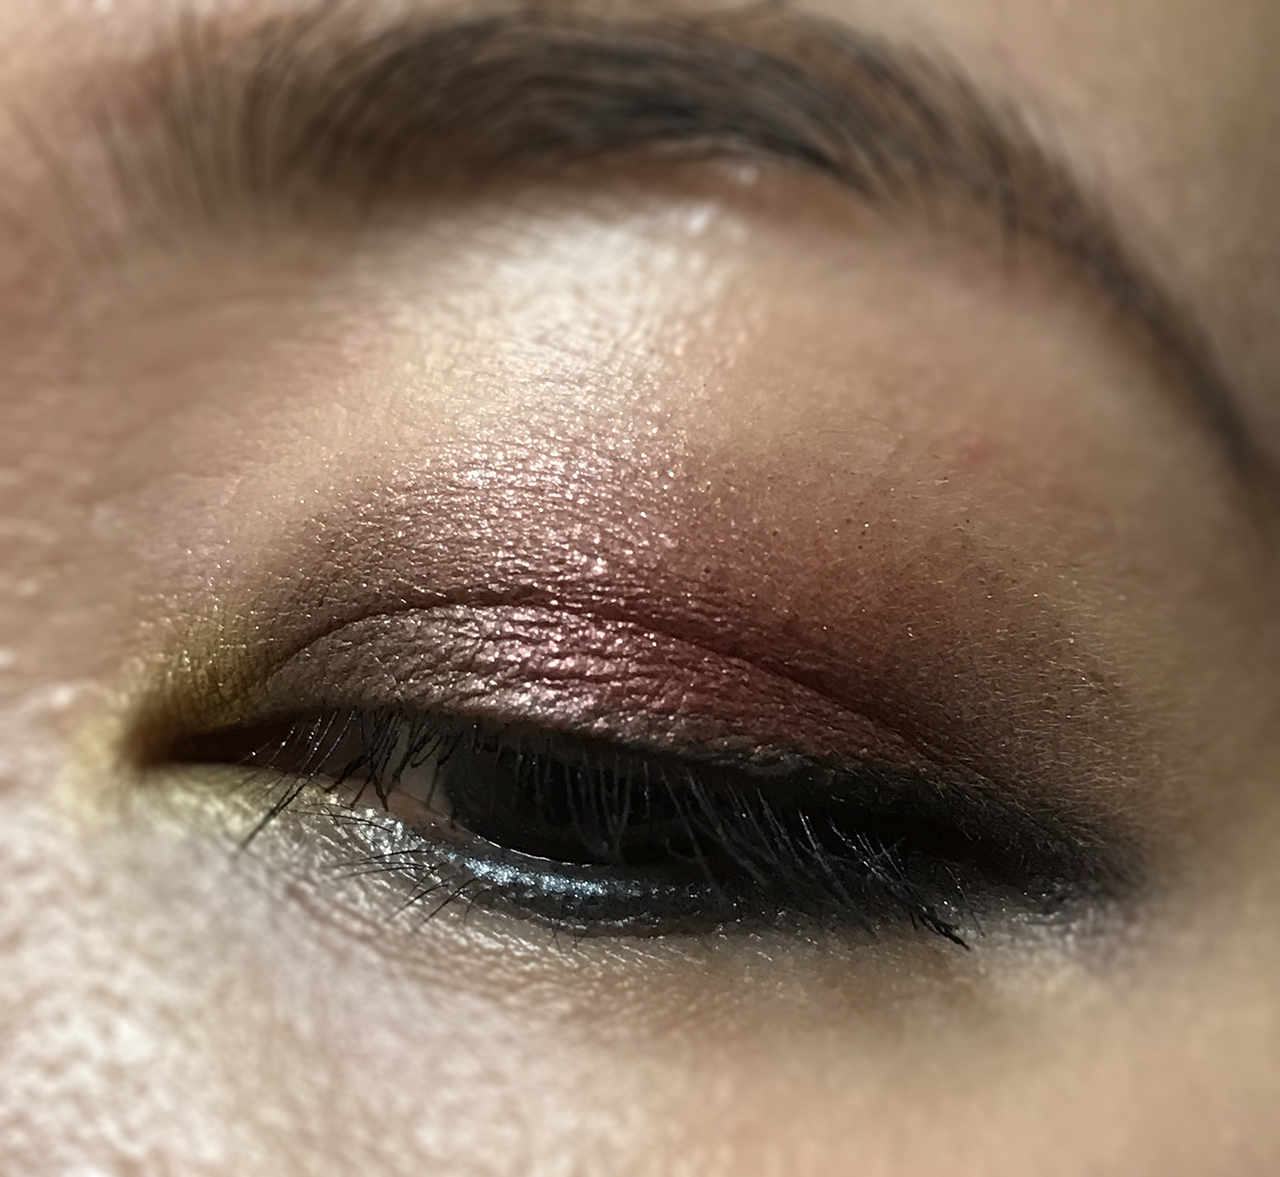 Chanel Ombre Premiere eye makeup look 2